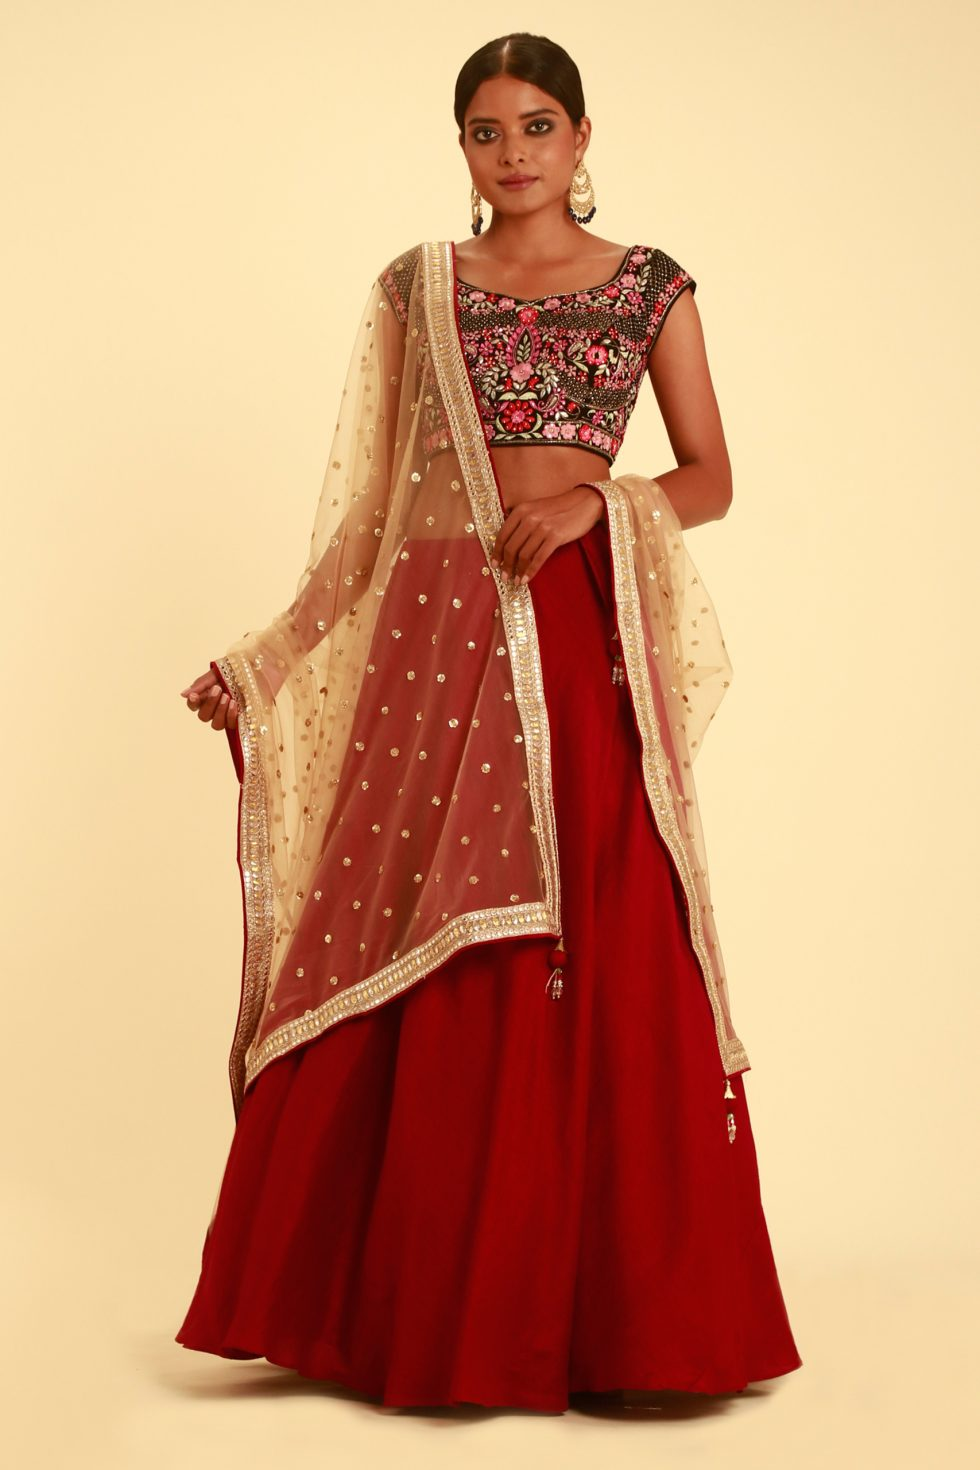 Fiery Red Lehenga And Contrast Choli with Multi Colour Floral Embroidery and Gold Dupatta